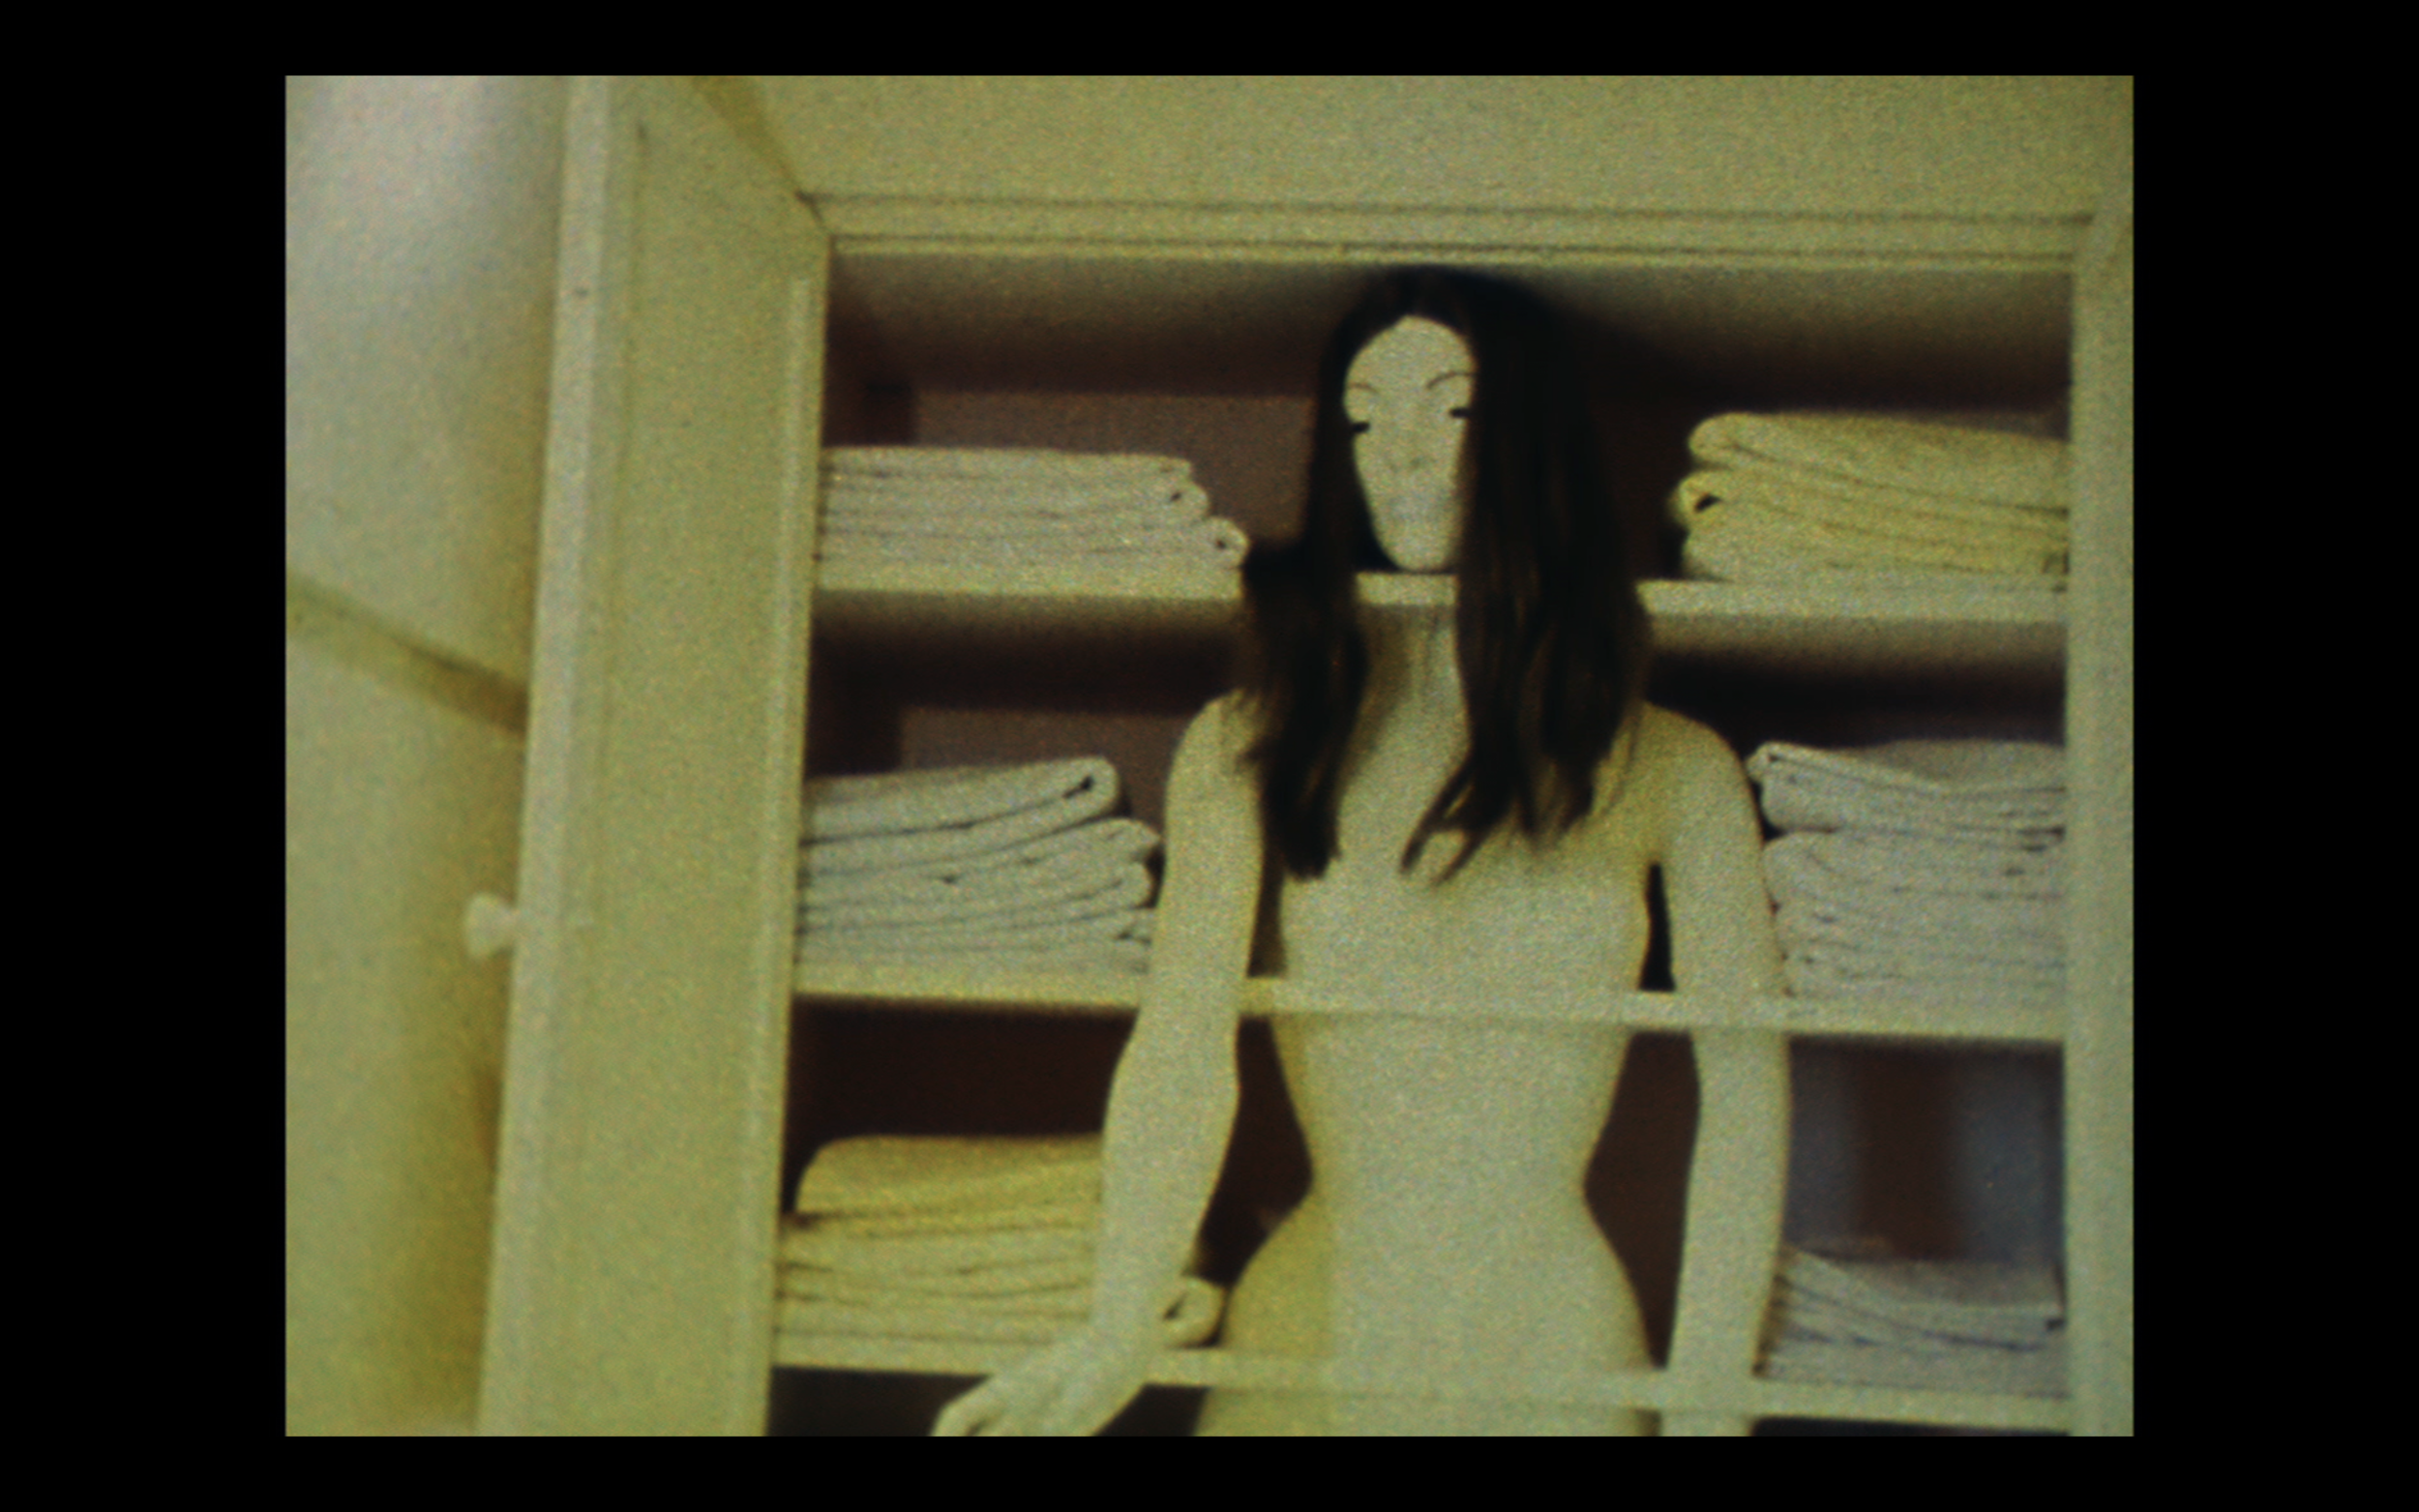 Still from: Woman's House, 1972, 13:40 min (5 min excerpt), 16mm transferred to video